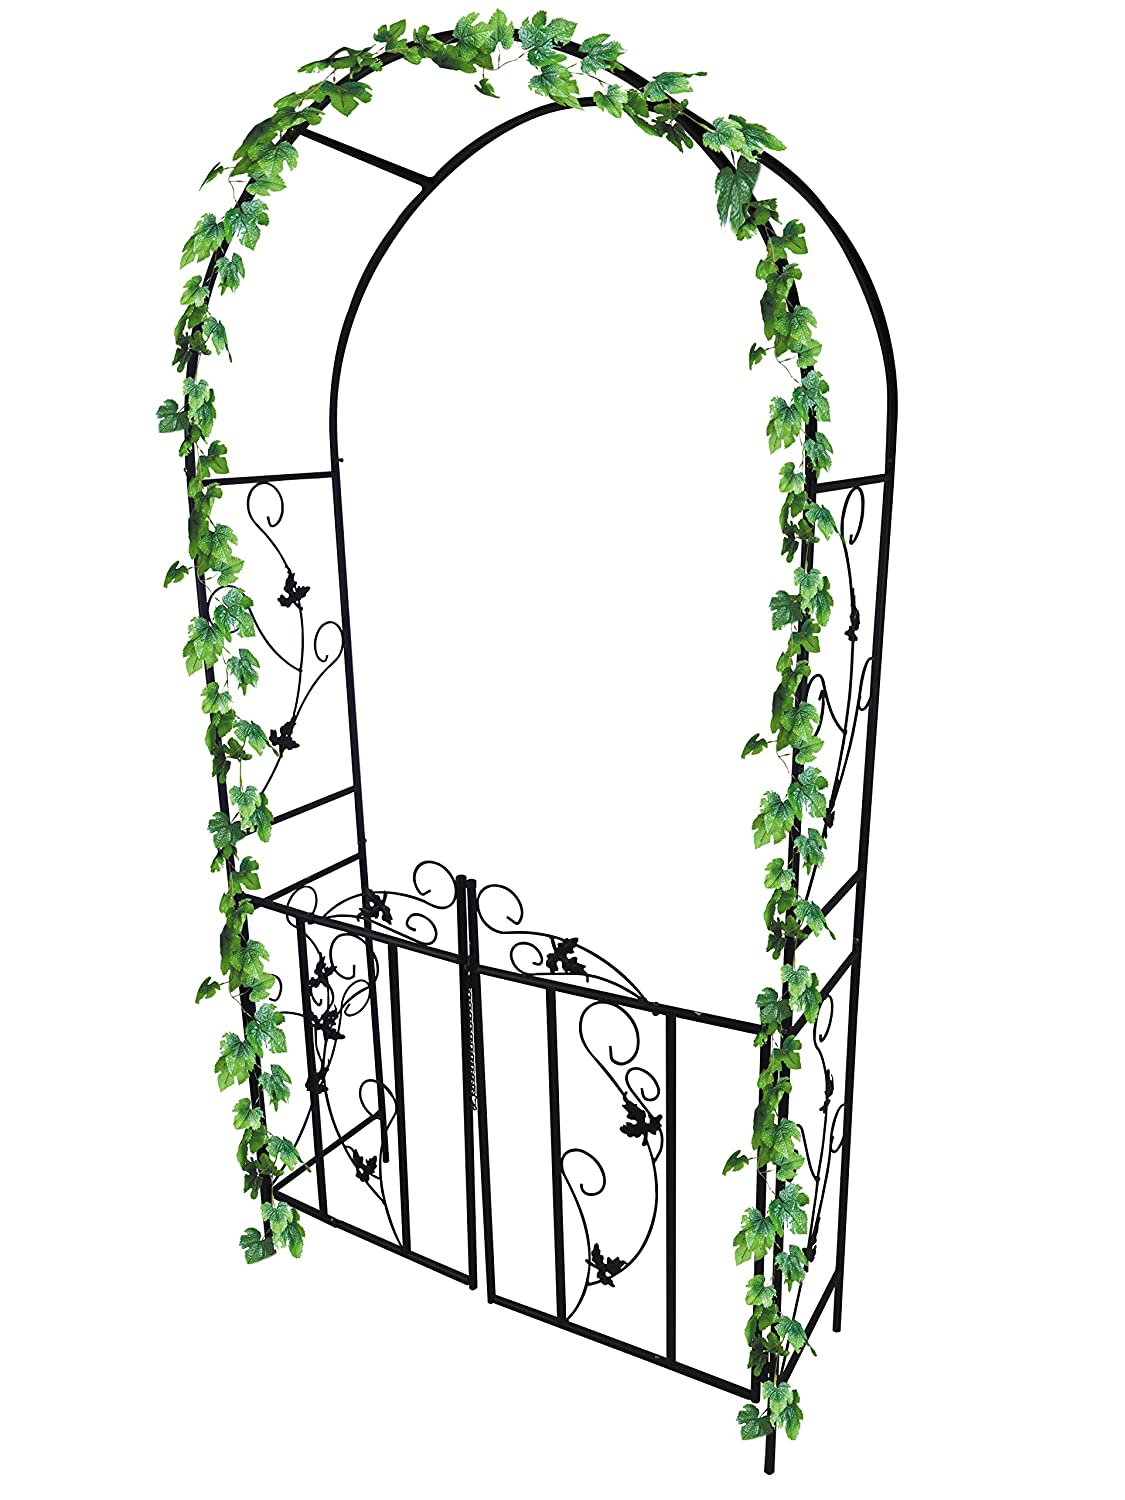 Dirty Pro ToolsTM Metal Garden Arch With Gate Archway For Climbing Plants  Ornament: Amazon.co.uk: Garden U0026 Outdoors